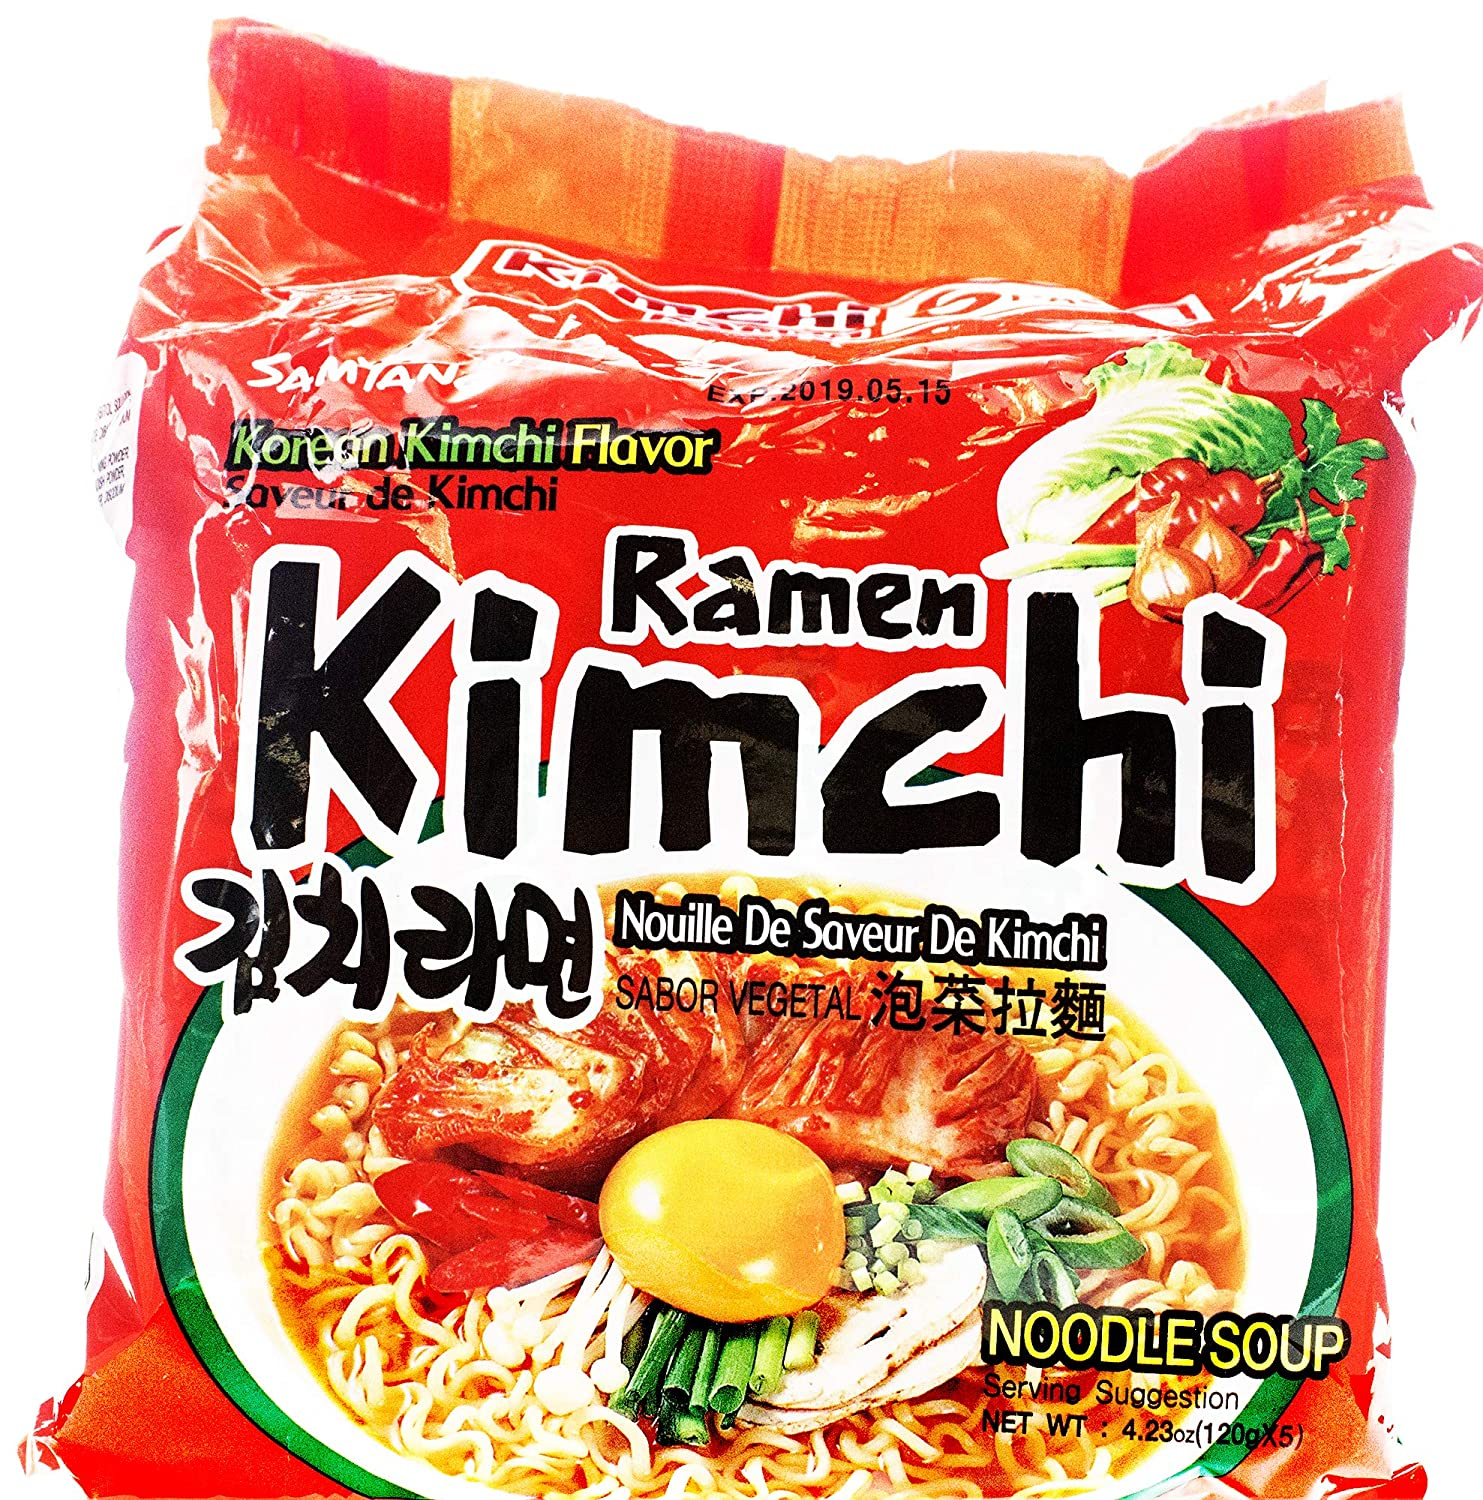 New Samyang Spicy Instant Ramen (Hot Kimchi (12 pack))